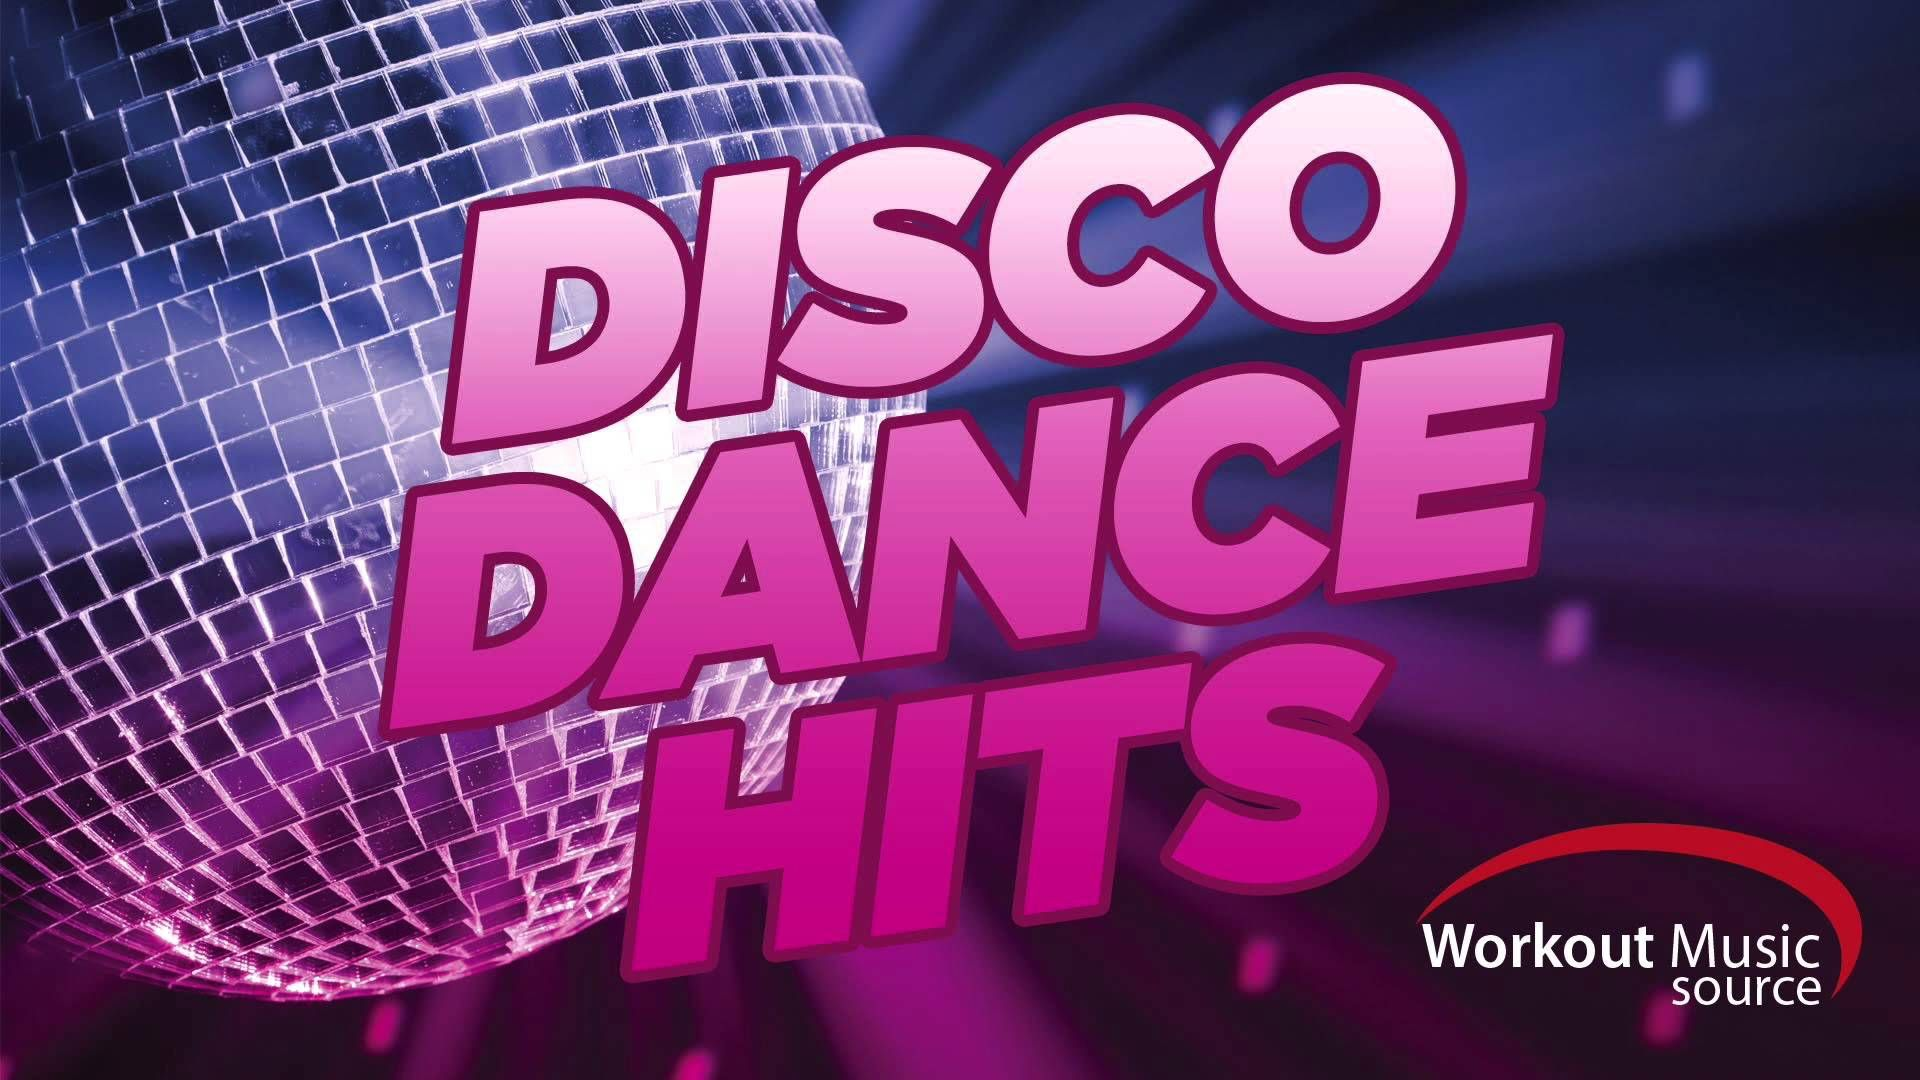 Workout Music Source // Disco Dance Hits (130 BPM) Disco